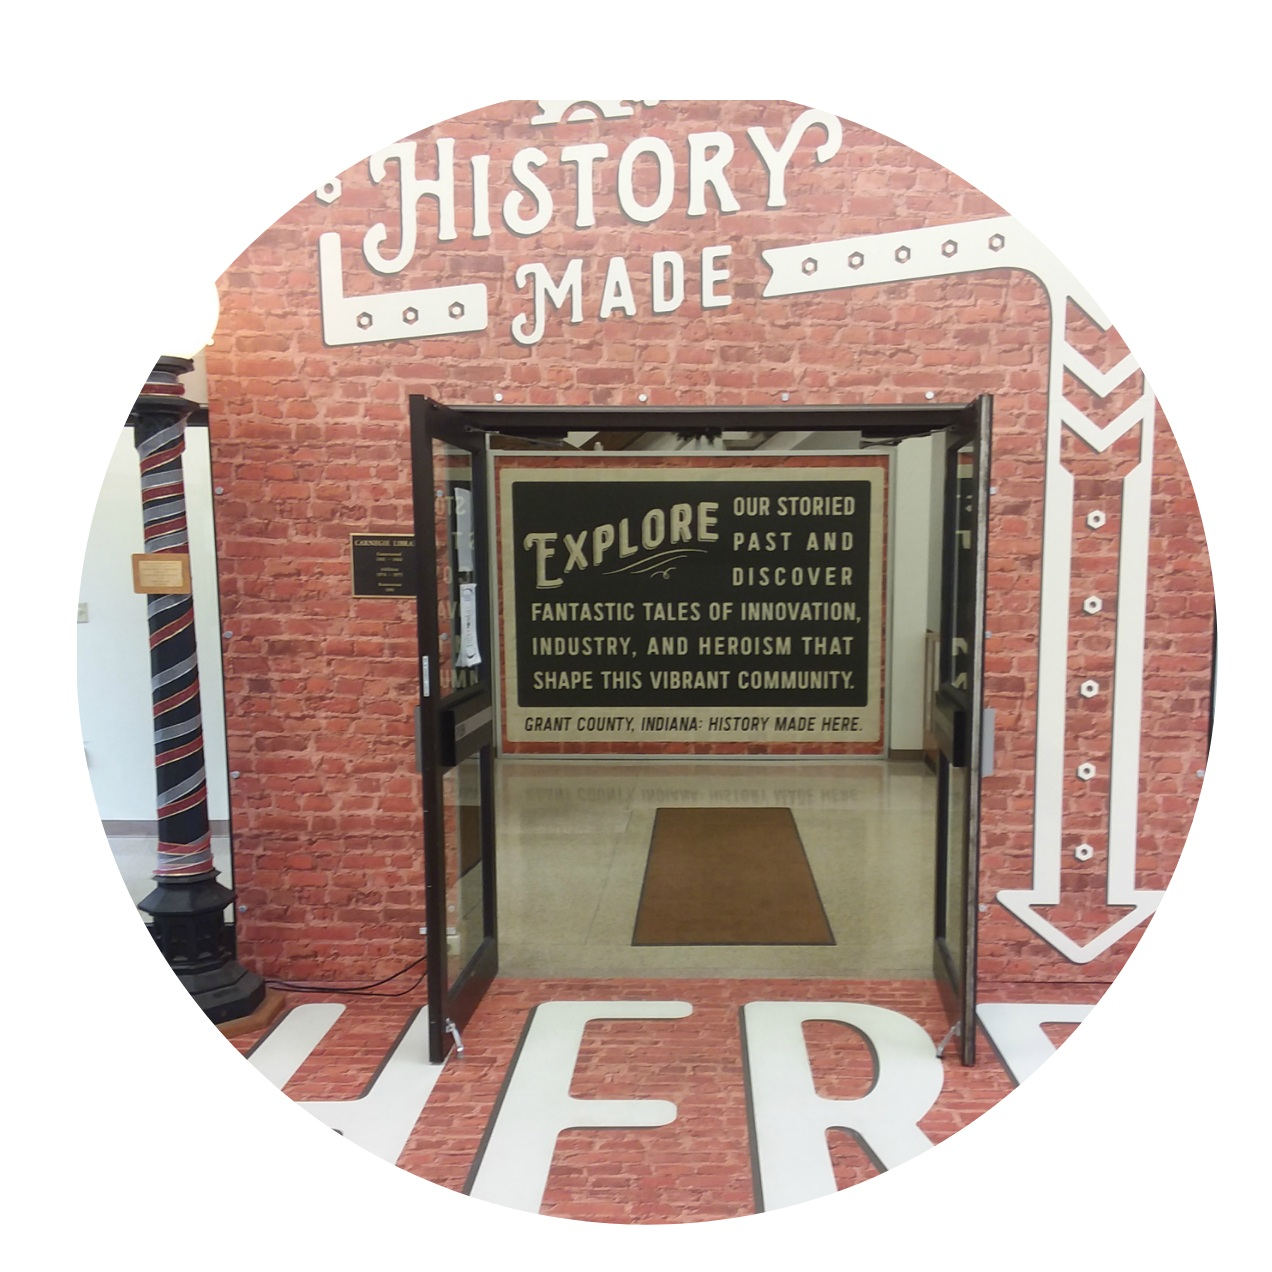 Grant County Museum - a public museum that preserves the history of Marion and Grant County through exhibits and artifacts.